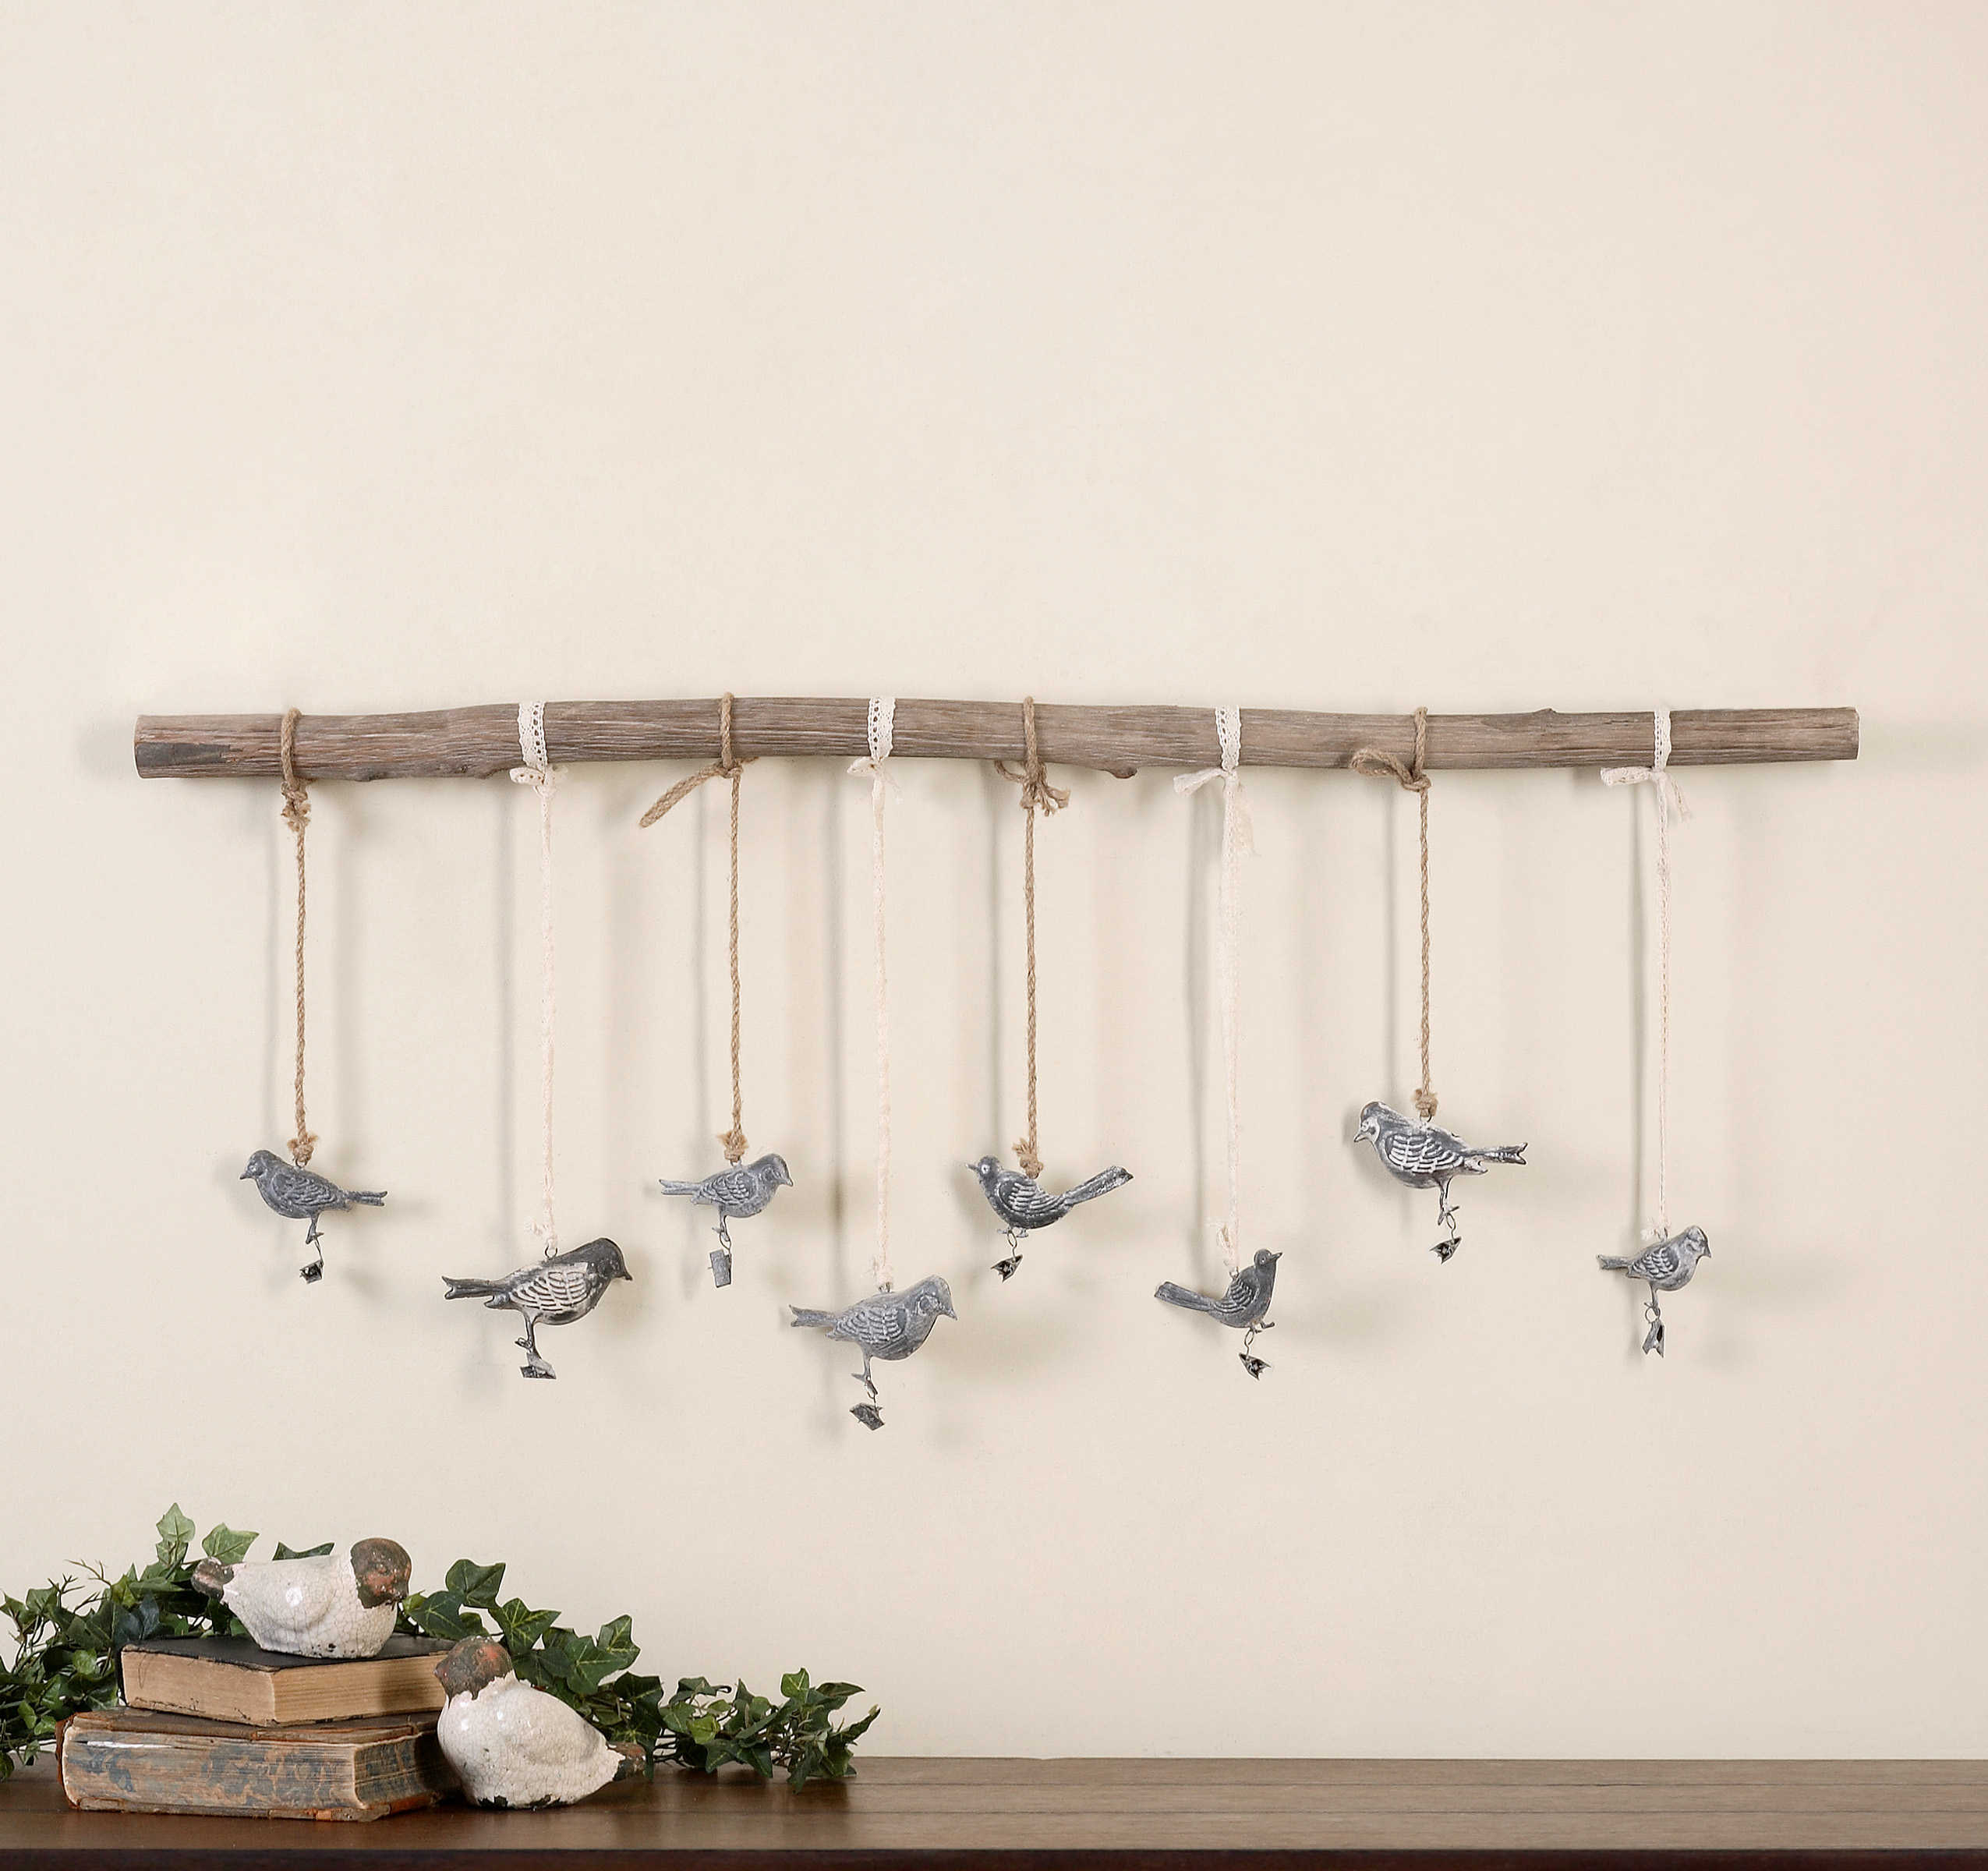 Birds On A Branch Wall Decor Throughout 2020 Uttermost Birds On A Branch Wall Art (View 7 of 20)